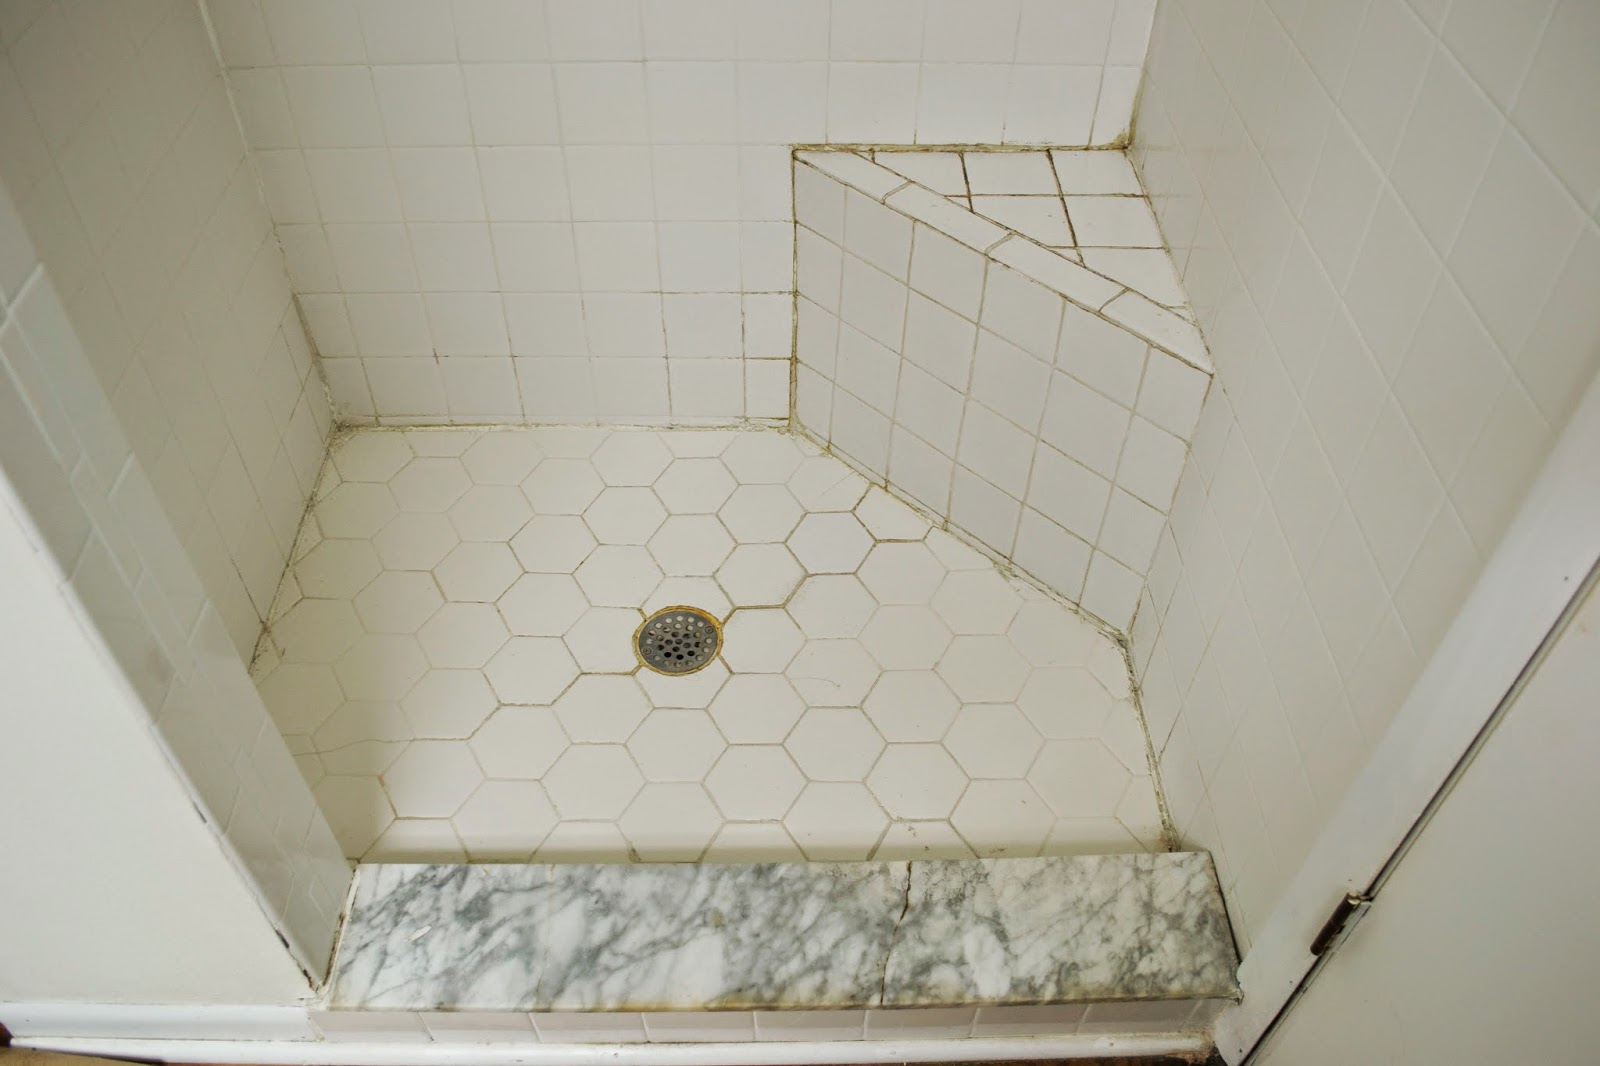 CK and Nate header: Tile Grout Conquered